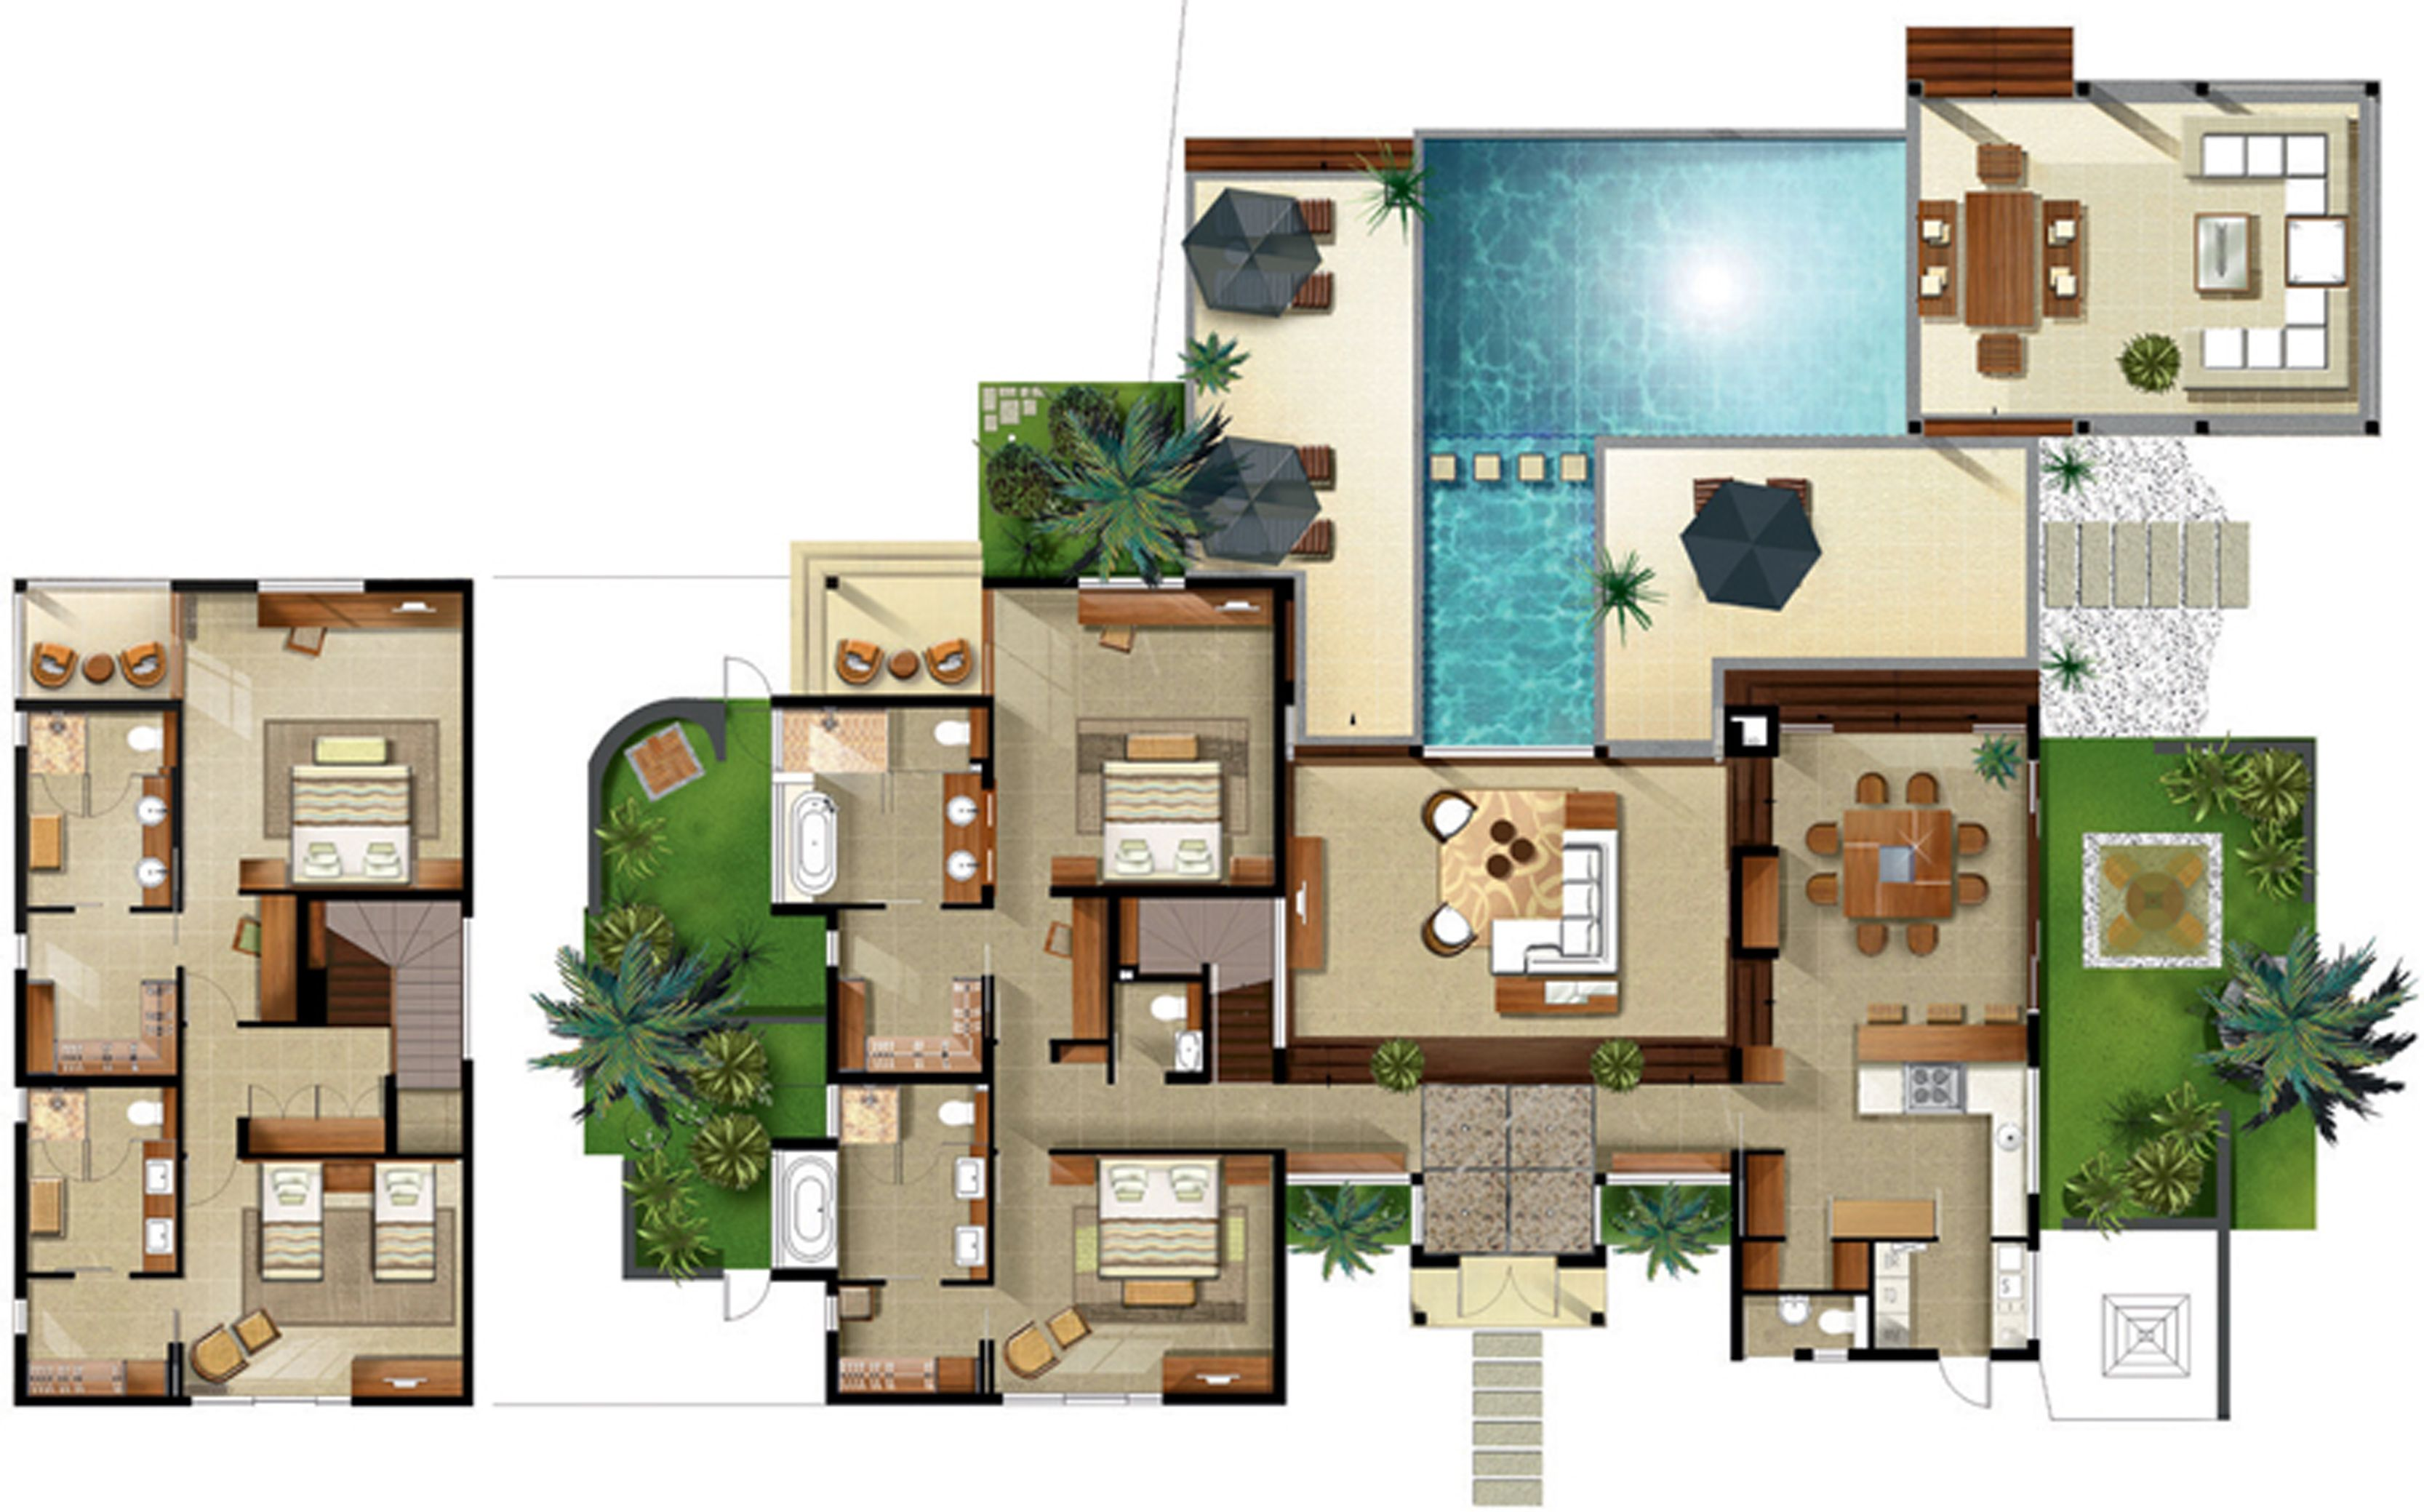 Disney beach club villas floor plan resort villa floor for Villa designs and floor plans